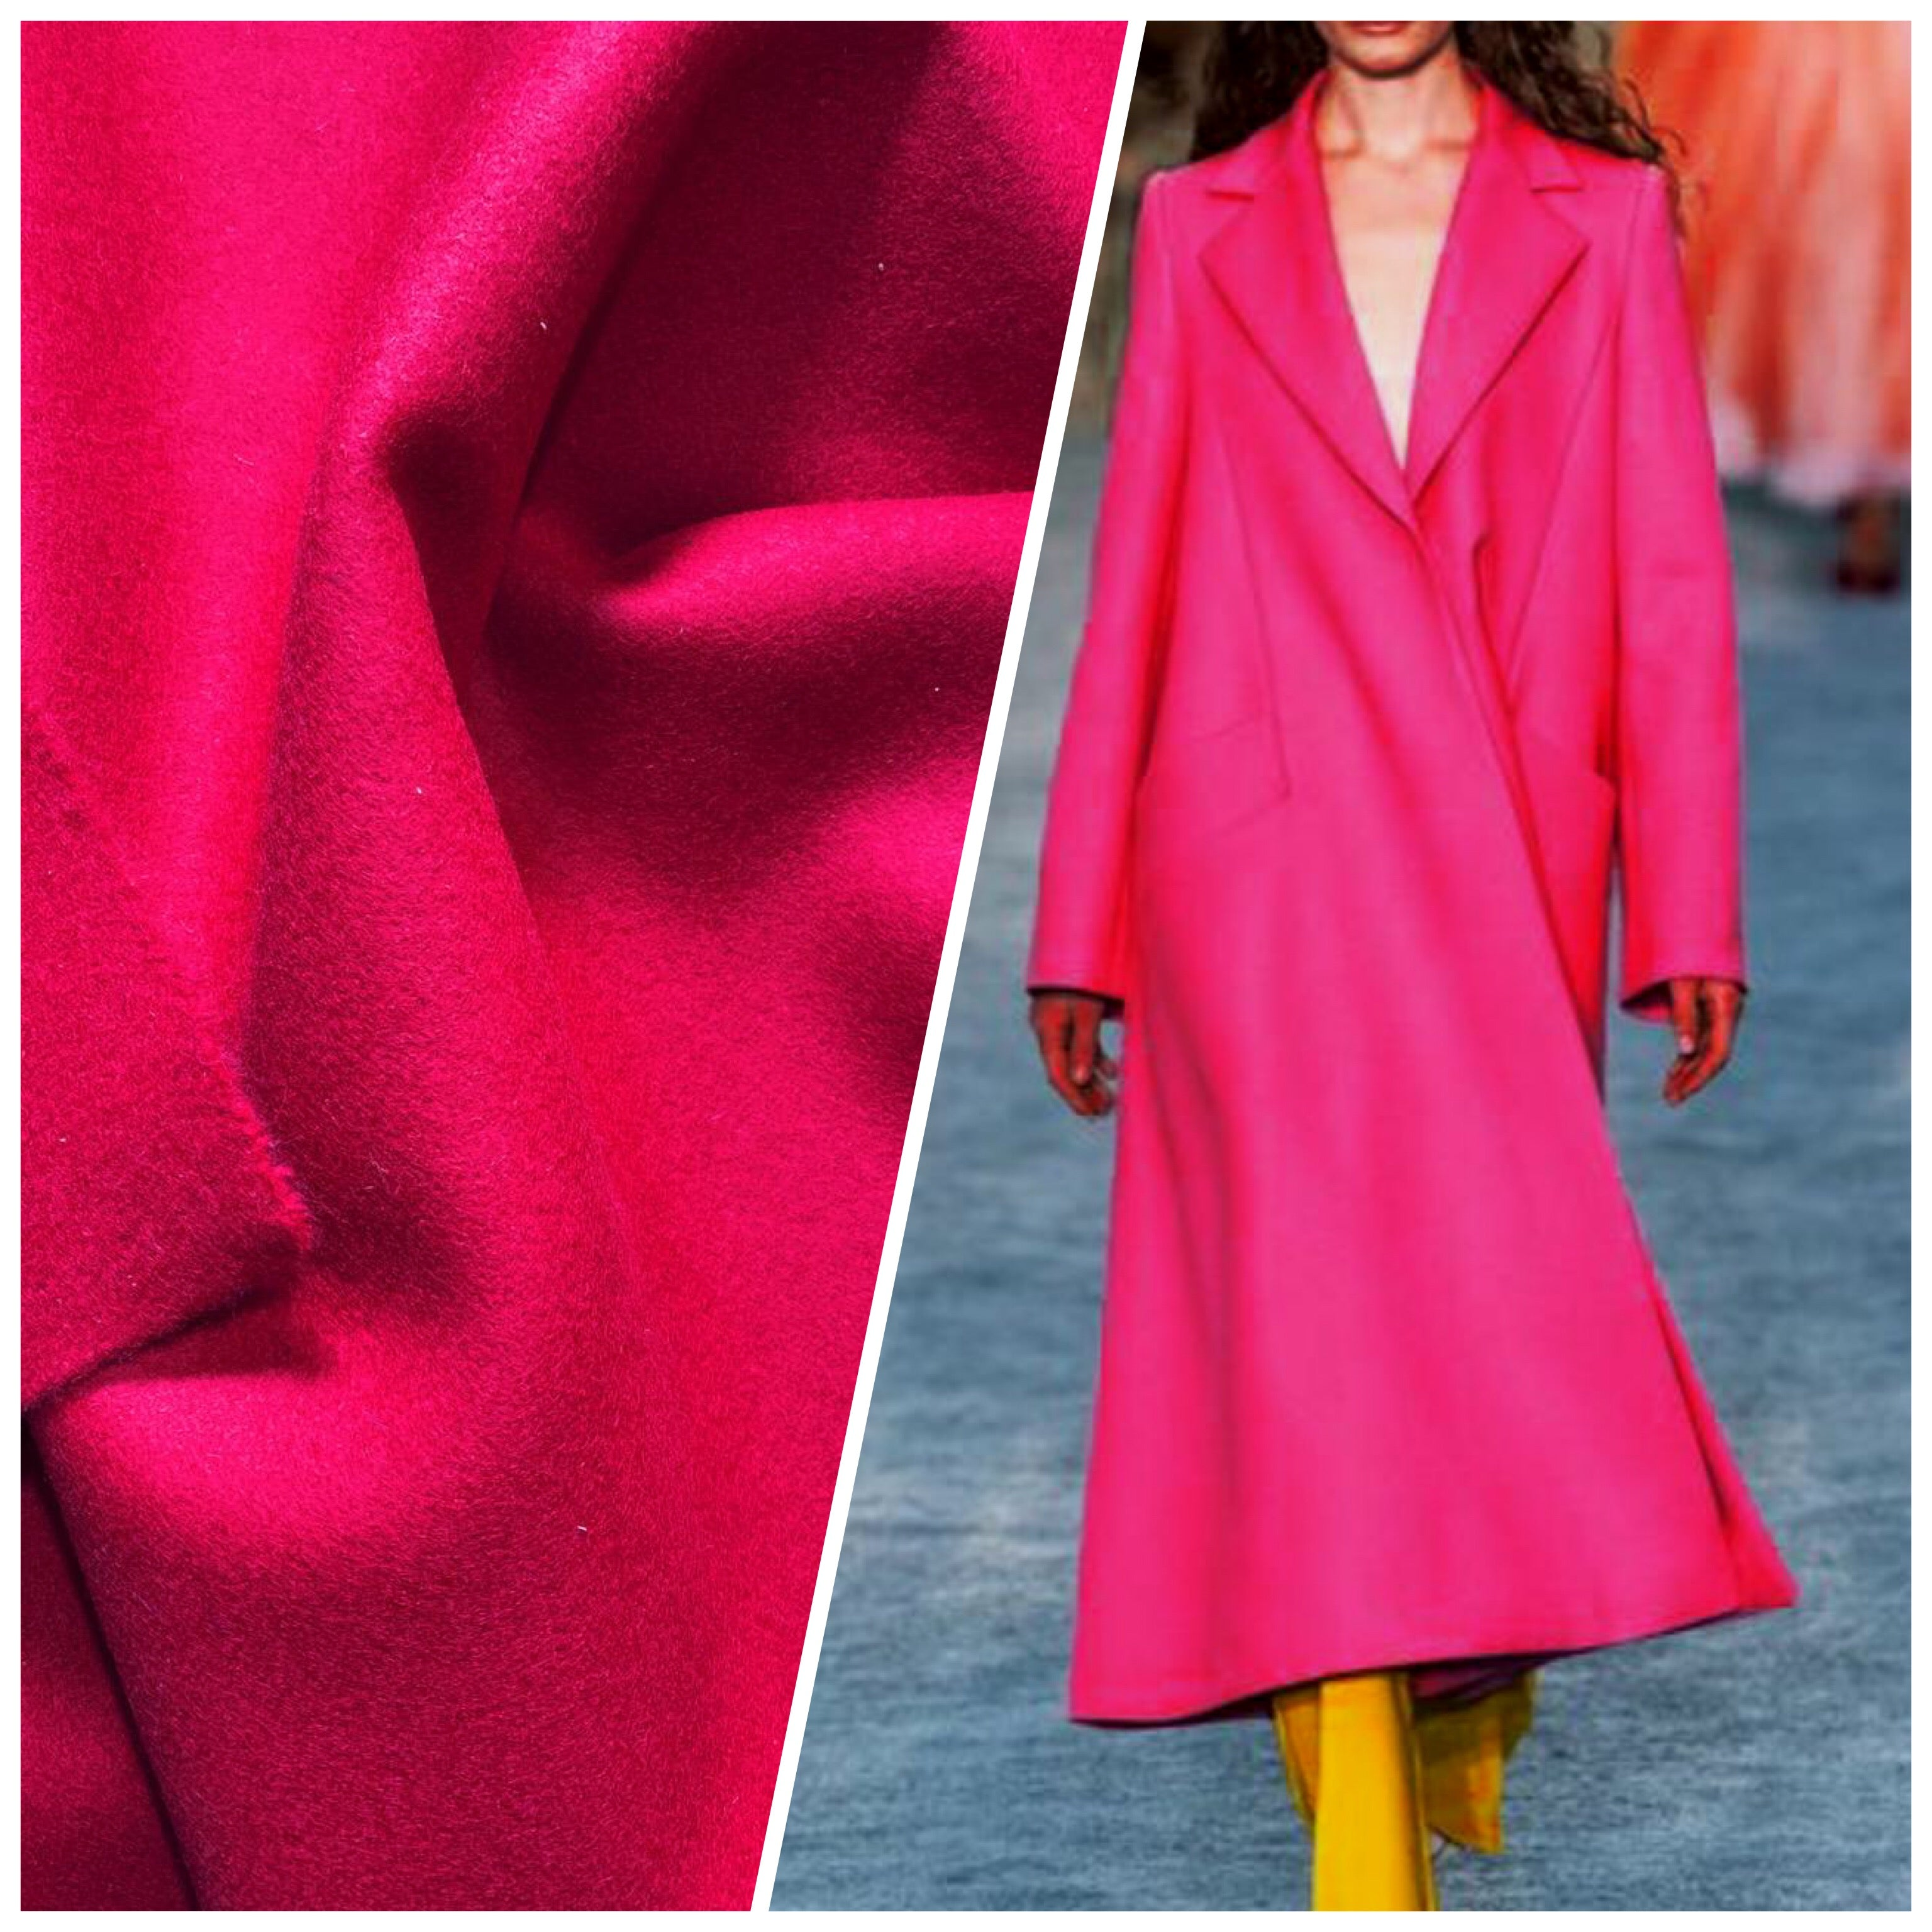 NEW Miss Elle Designer 100% Felted Wool Fuchsia Pink Coat Fabric